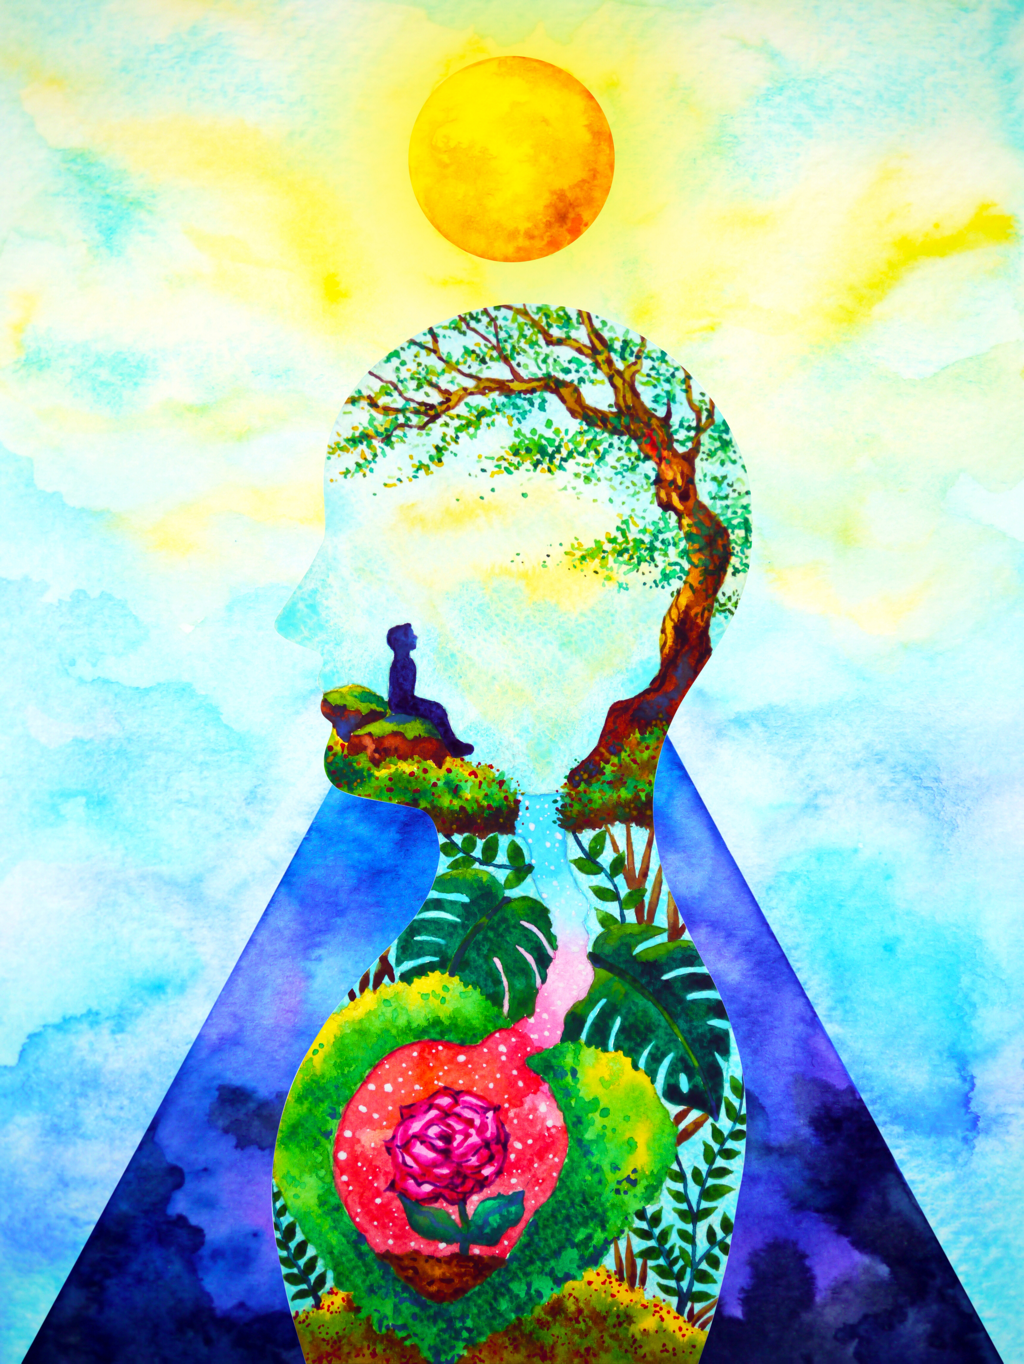 Artistic painting meditation under a tree, rose deep in heart of earth